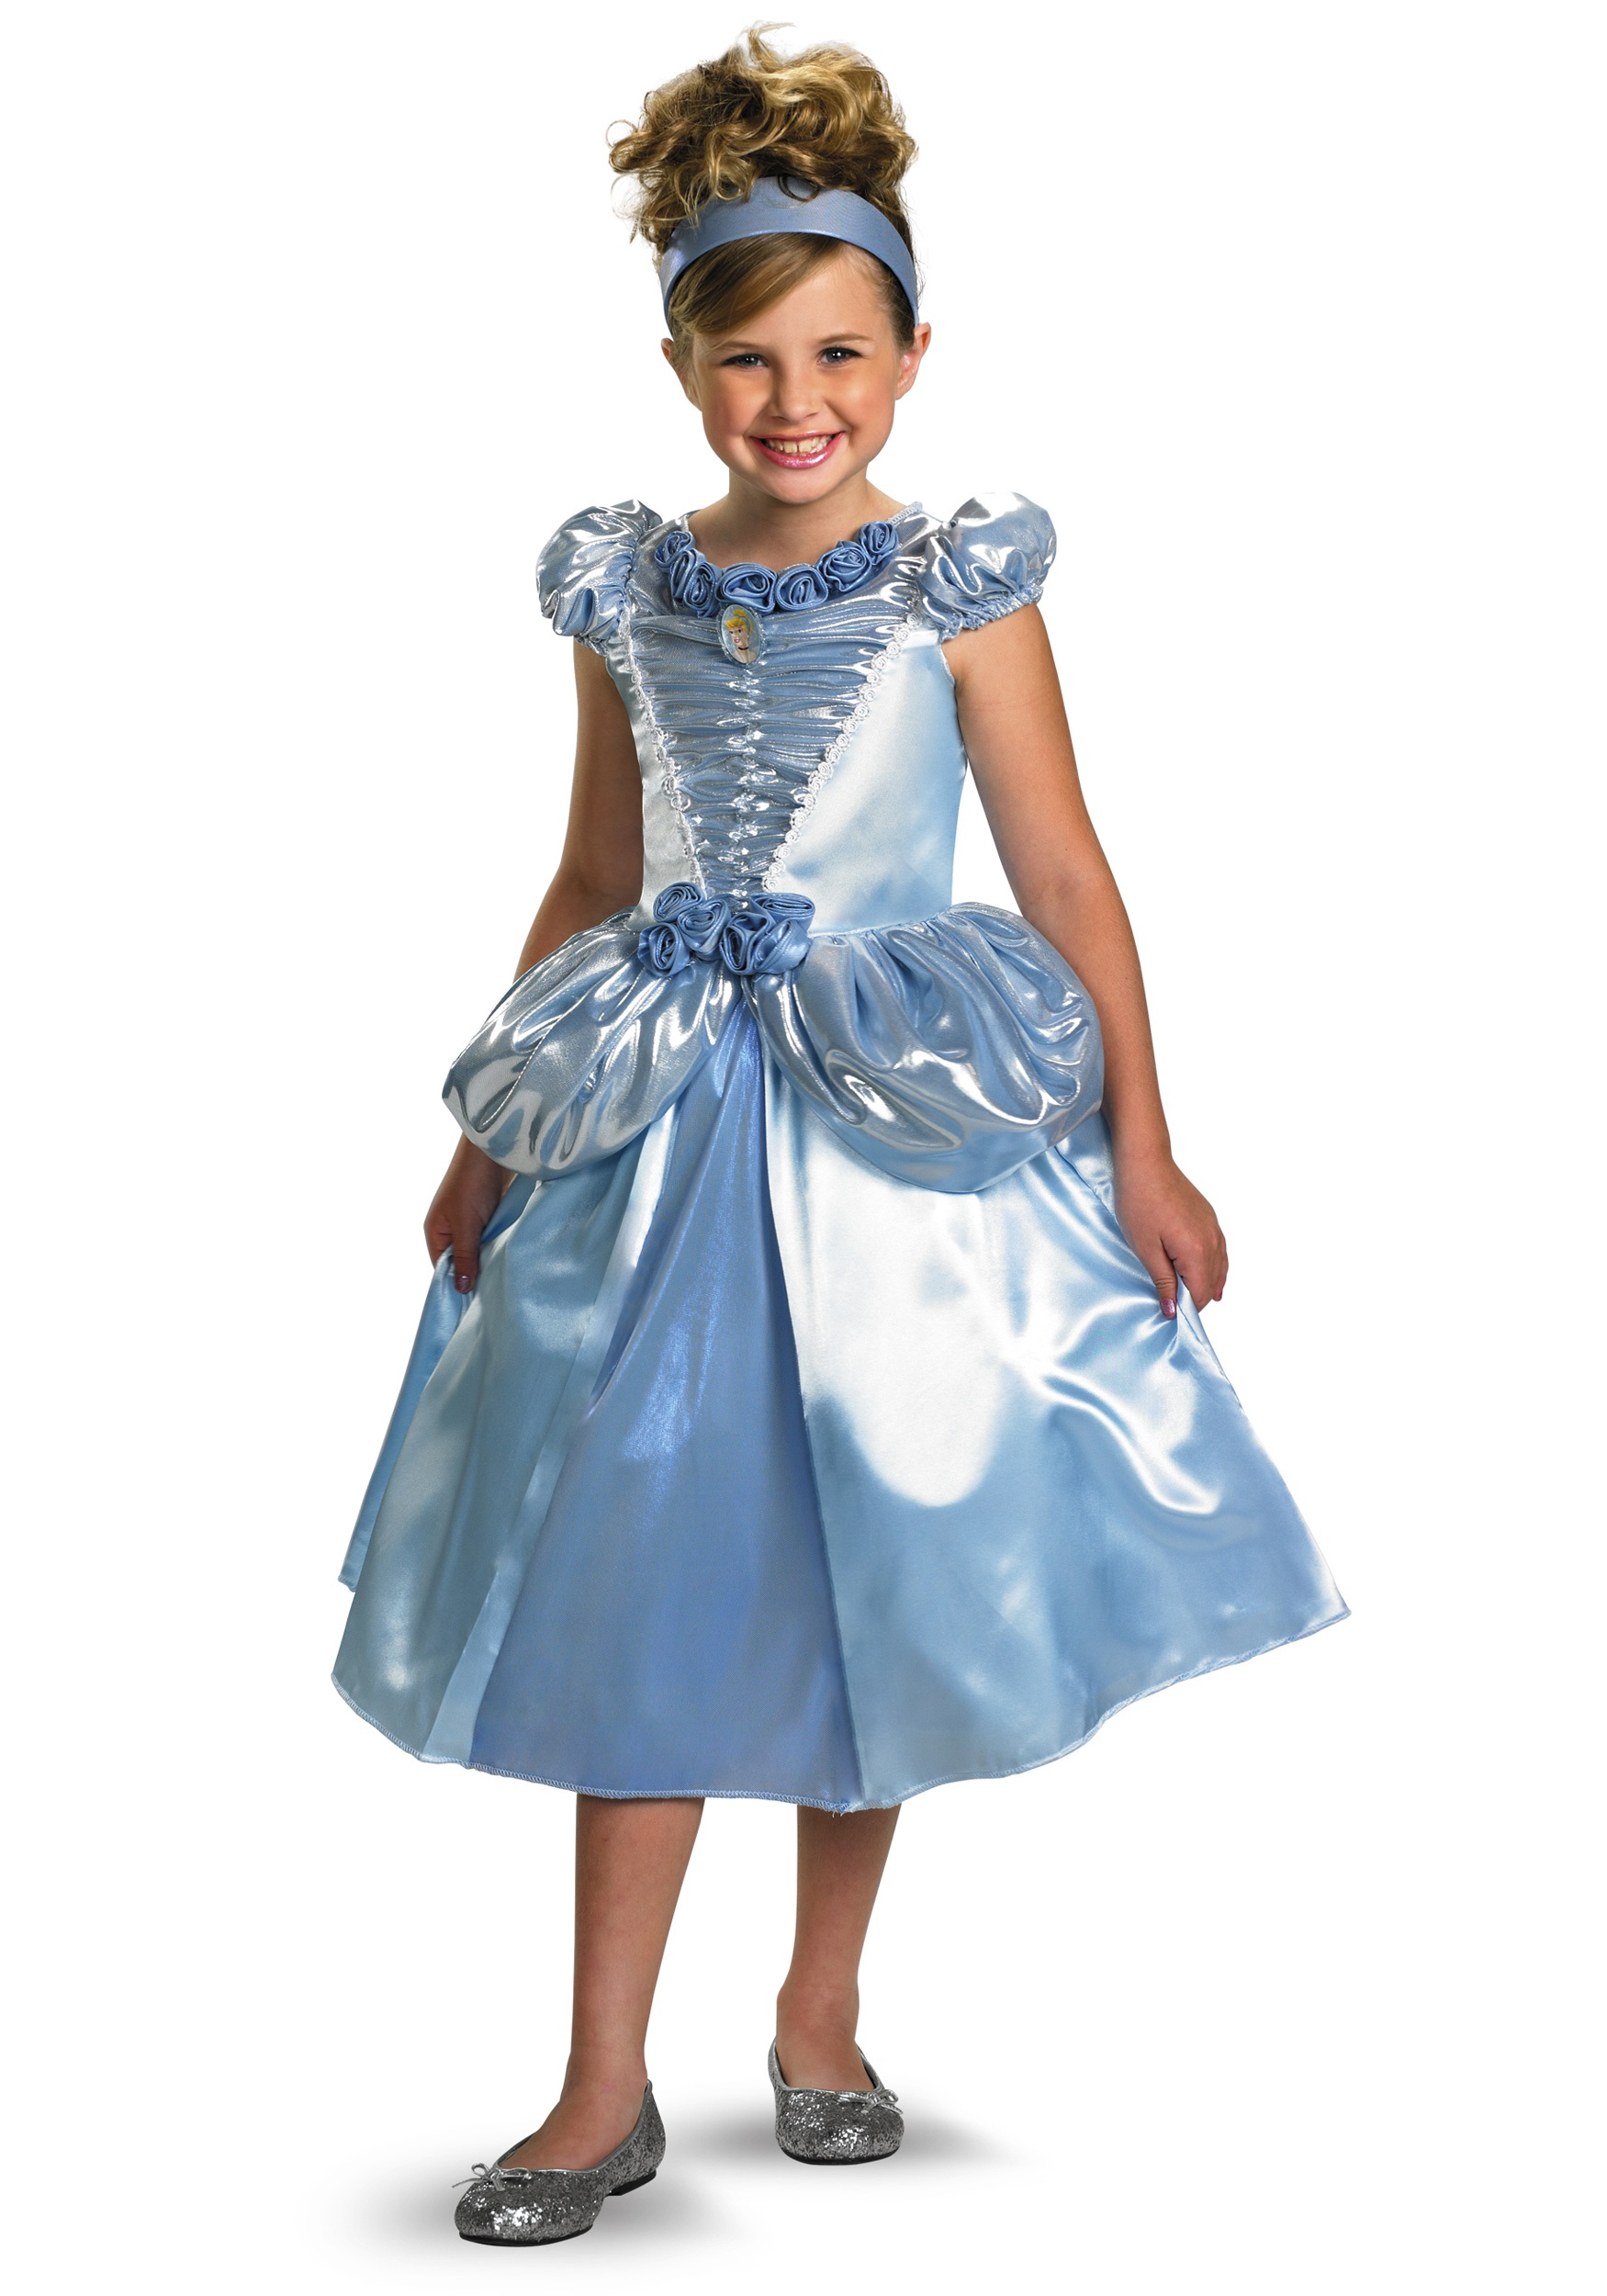 Child Shimmer Cinderella Costume  sc 1 st  Halloween Costumes & Child Shimmer Cinderella Costume - Halloween Costumes